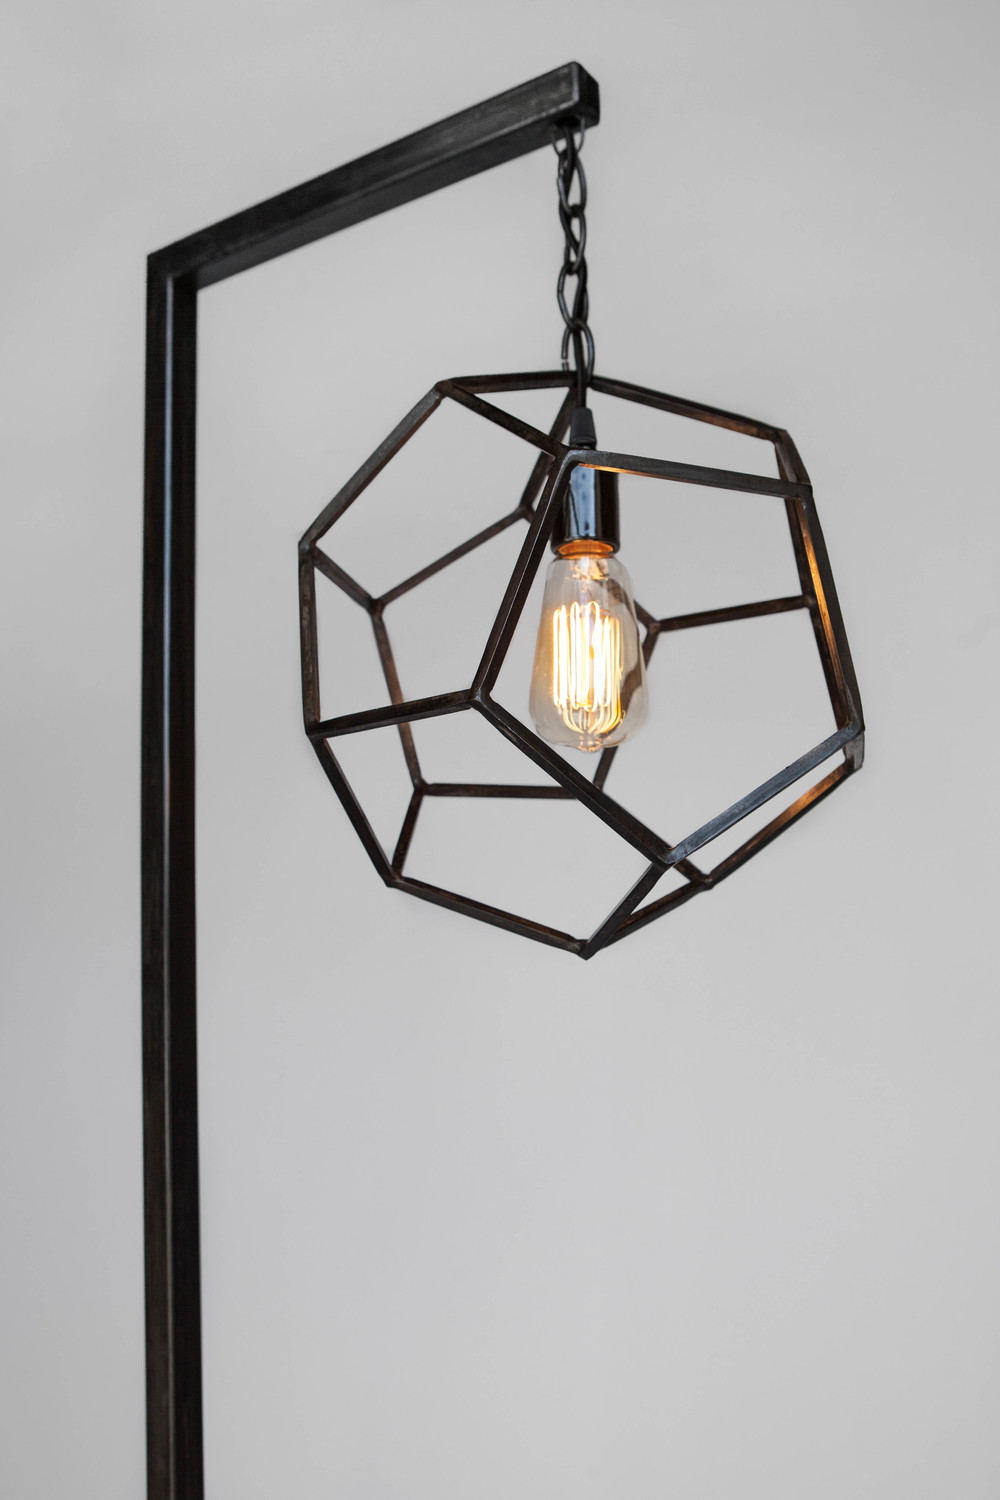 Dodecahedron floor lamp zai divecha dodecahedron floor lamp by elektra steel aloadofball Image collections